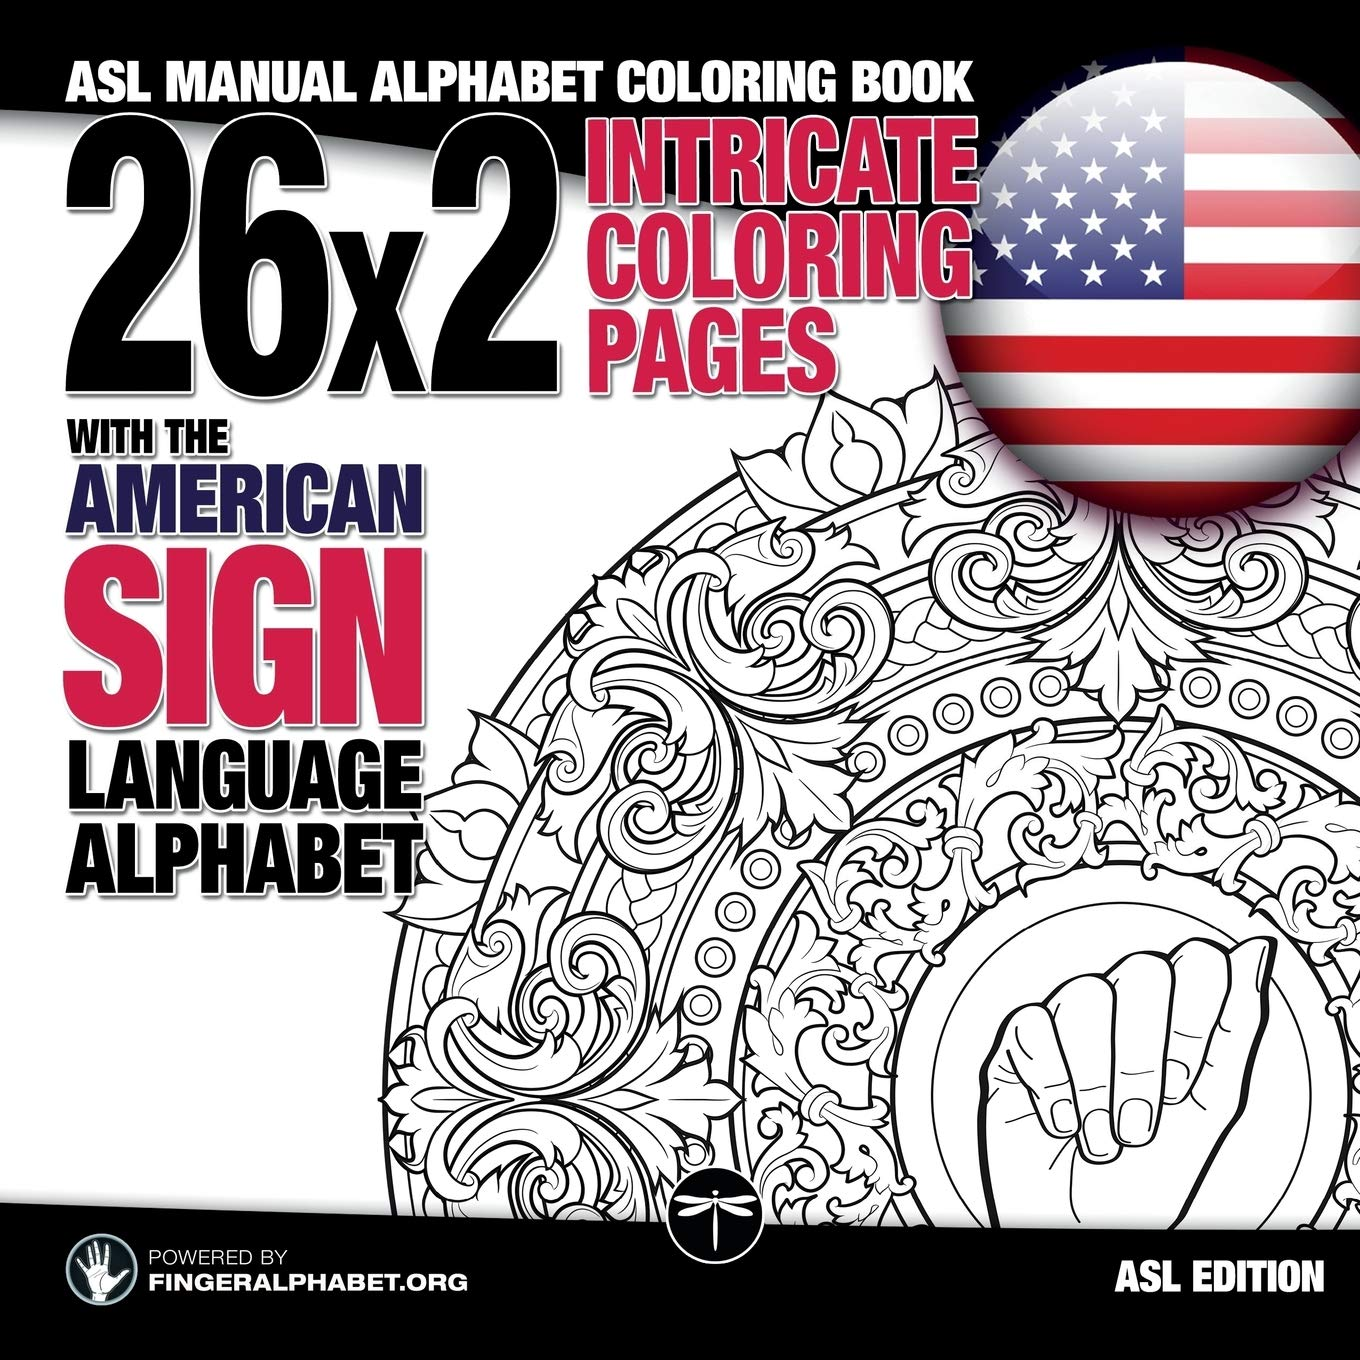 Amazon Com 26x2 Intricate Coloring Pages With The American Sign Language Alphabet Asl Manual Alphabet Coloring Book Sign Language Alphabet Coloring Books Volume 1 9783864690402 Fingeralphabet Org Lassal Books